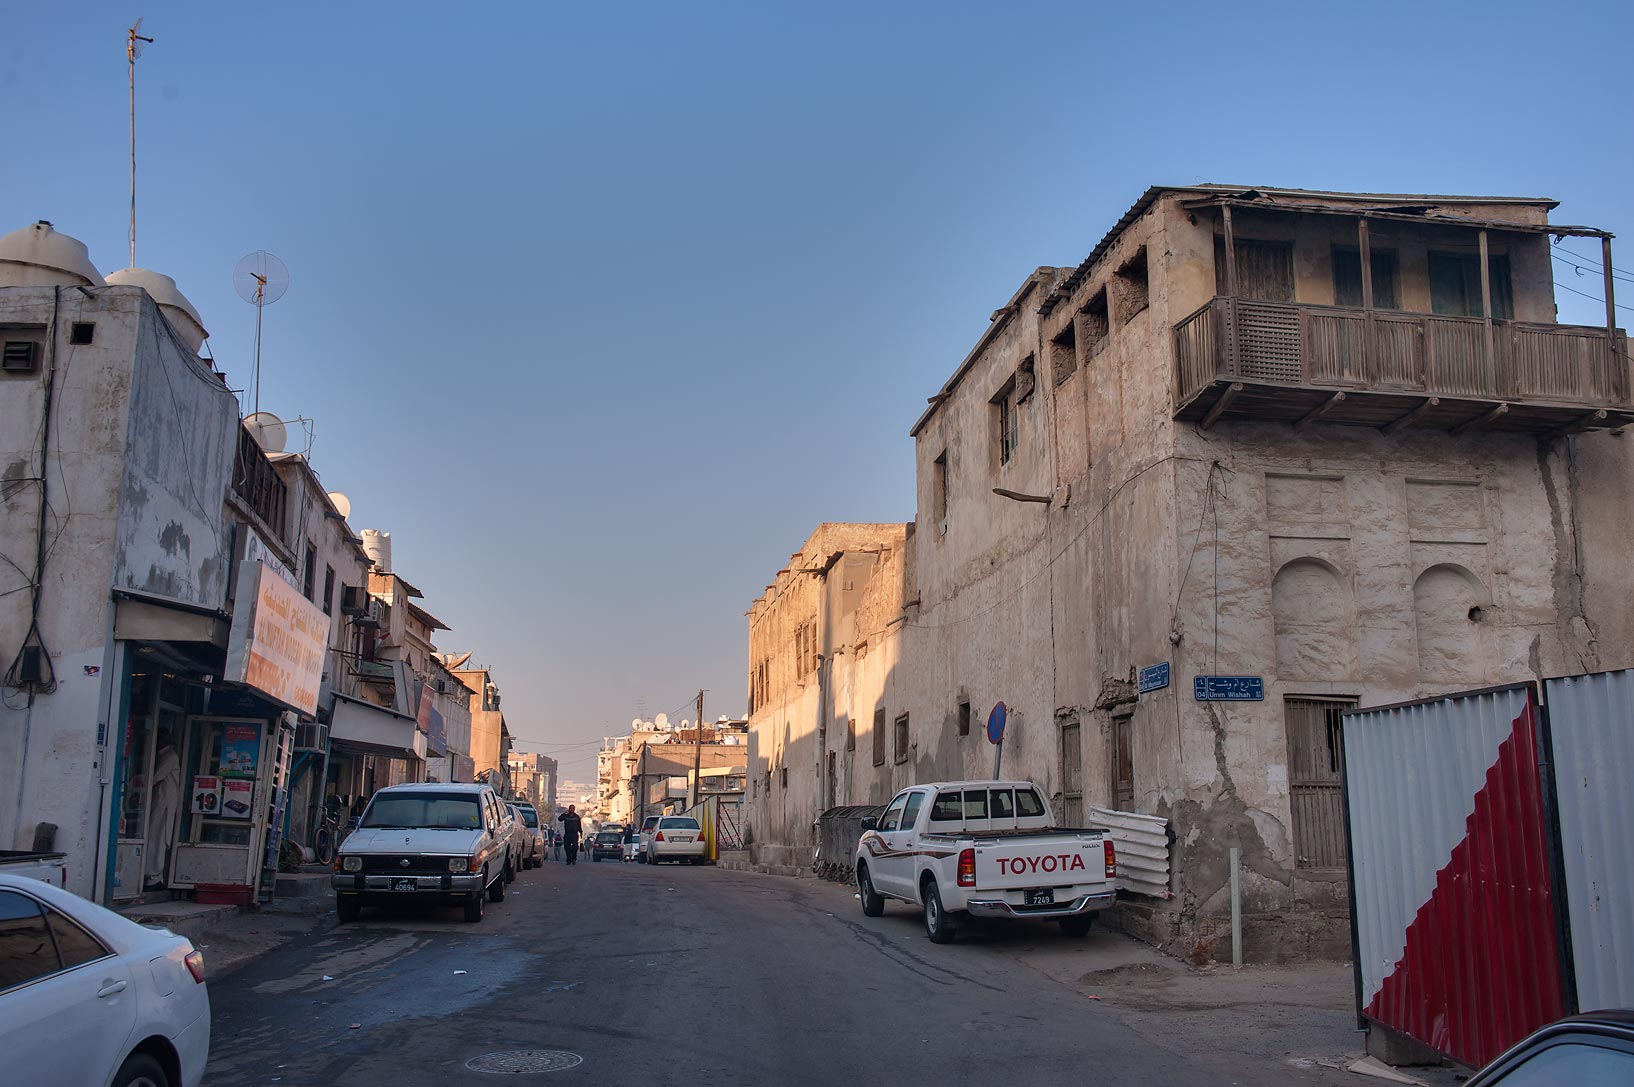 Old city in Musheirib area. Doha, Qatar